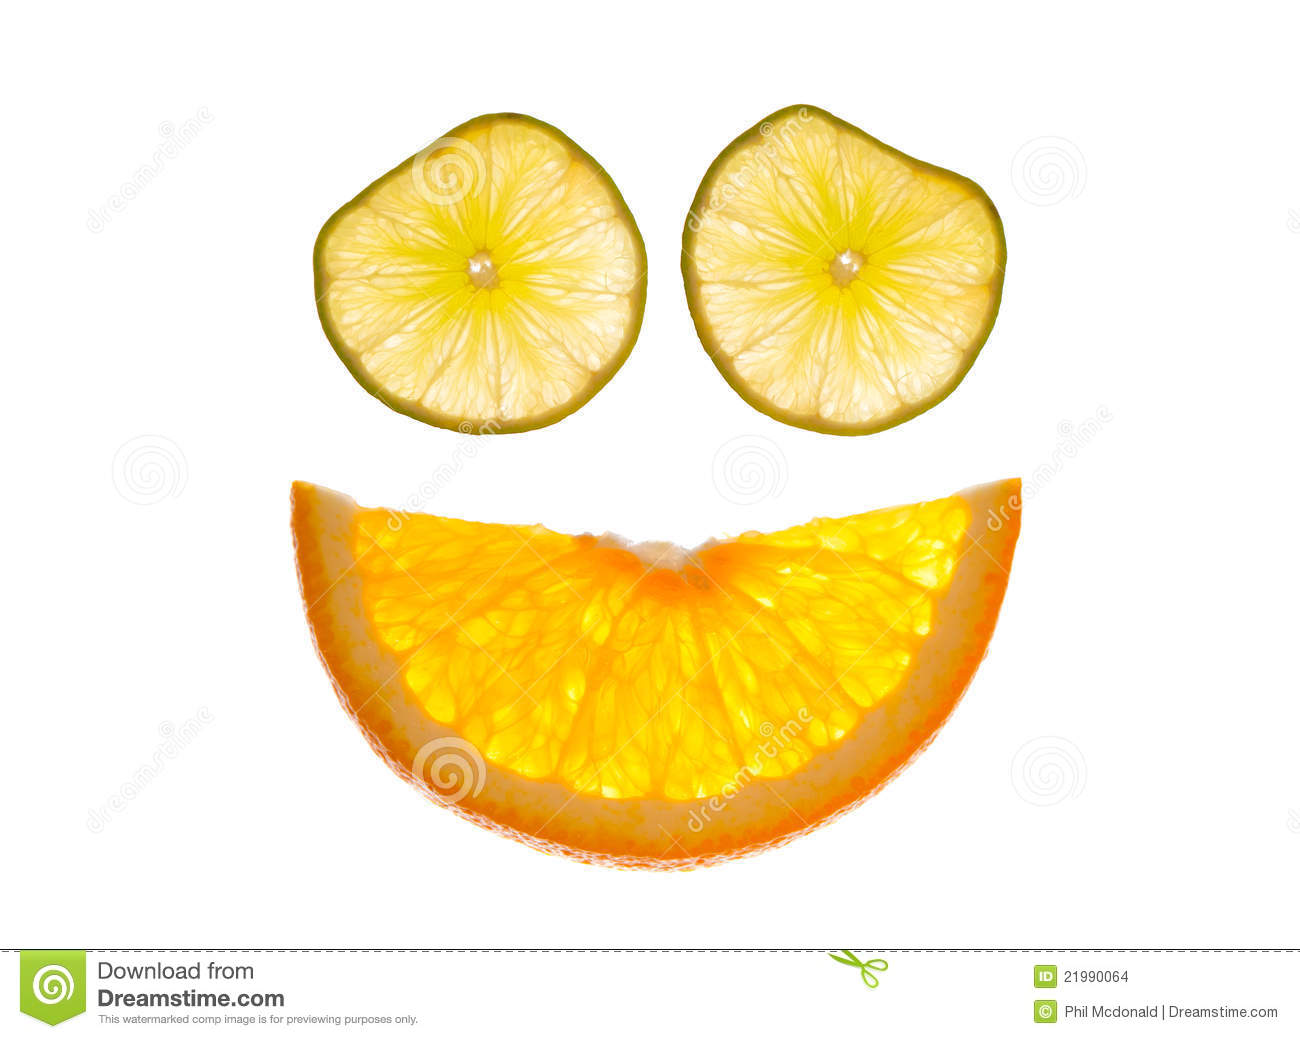 Of Orange And Lime Citrus Slices Arranged To Form A Smiley Face